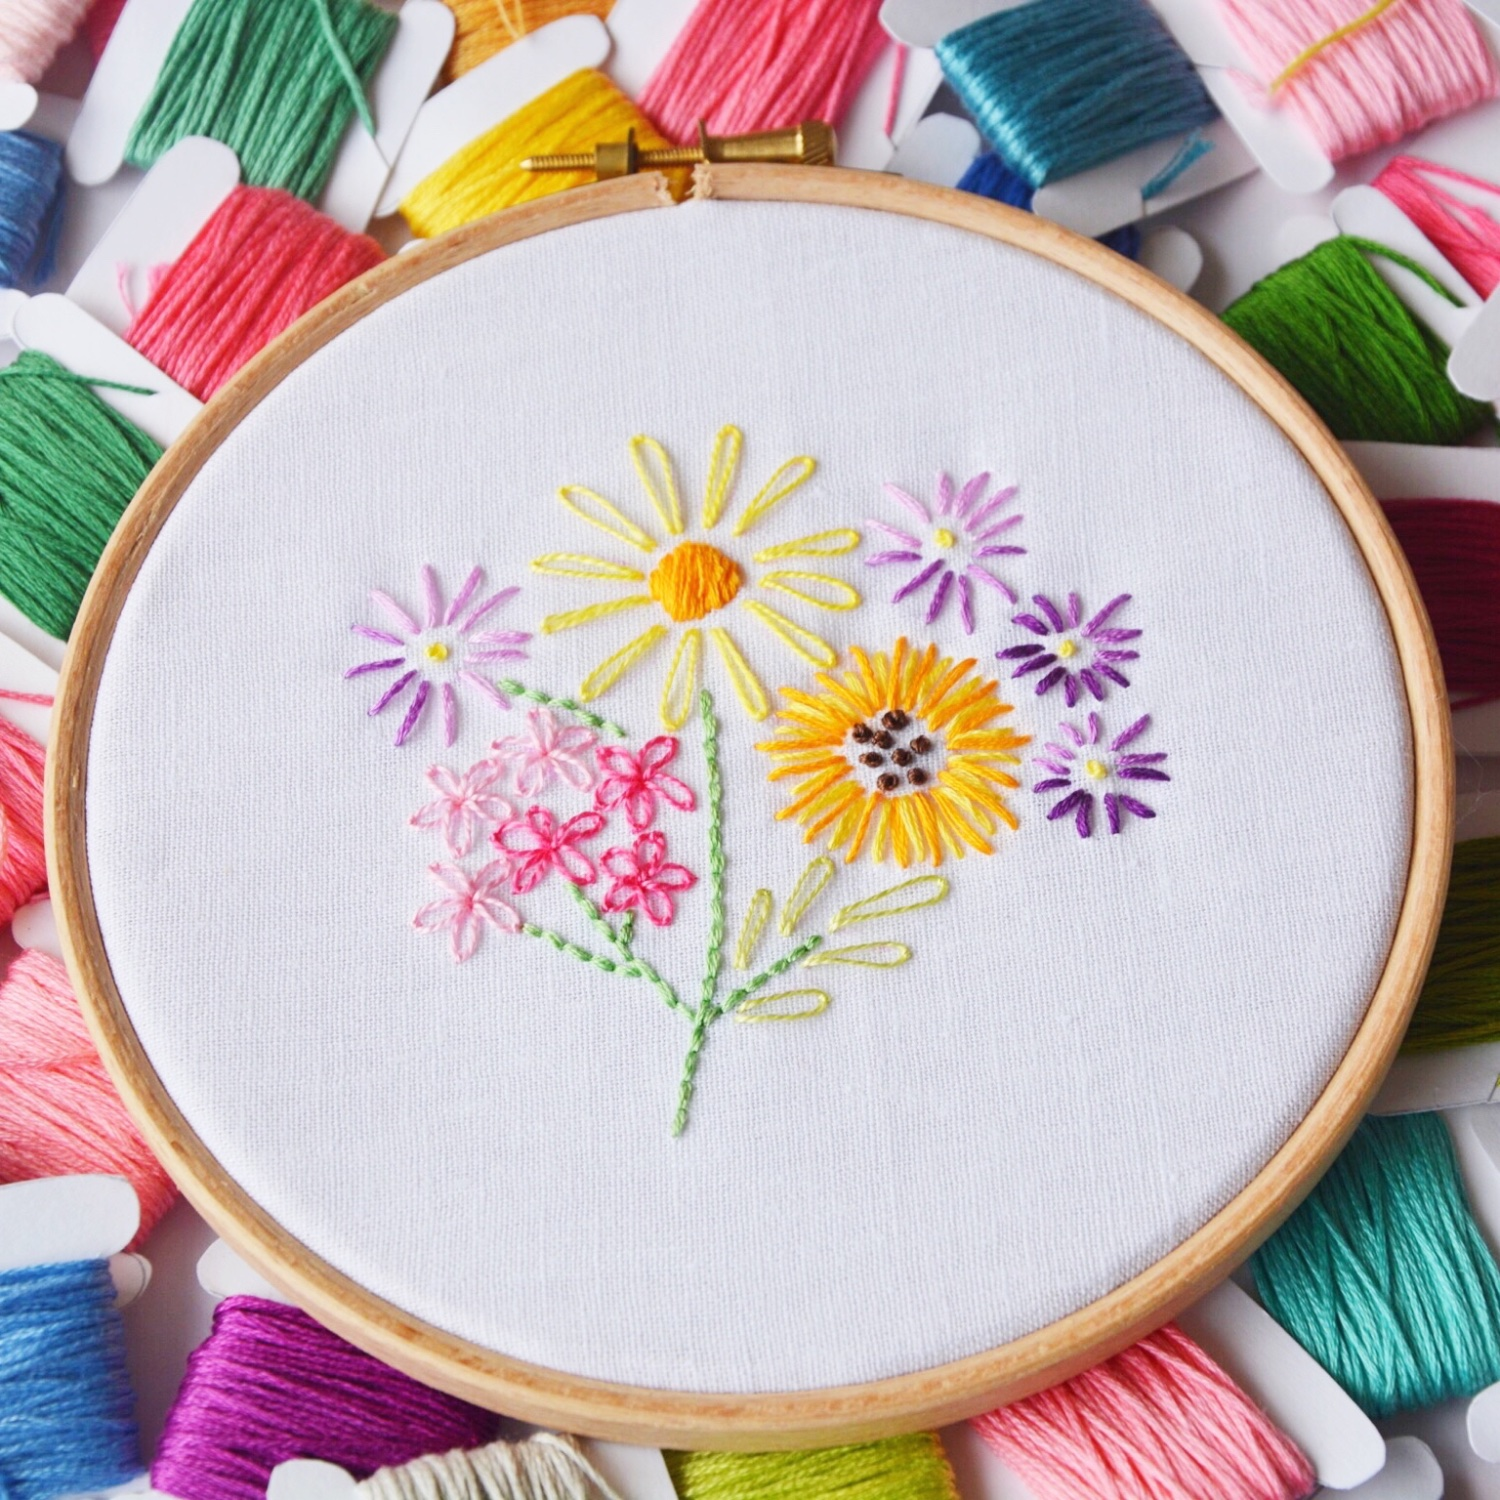 Vintage floral embroidery workshop | Hello! Hooray!